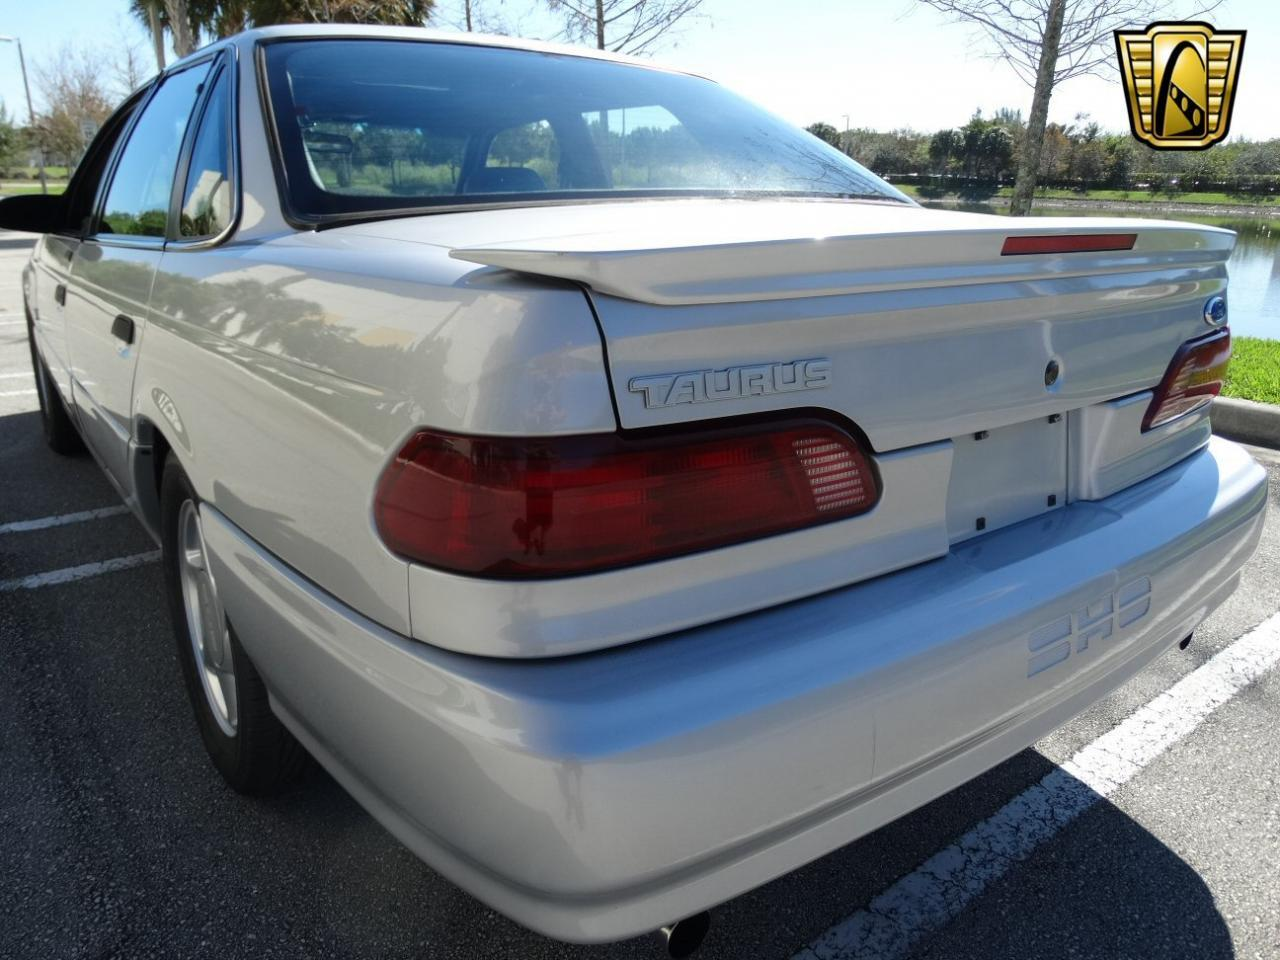 Large Picture of 1993 Taurus located in Florida - $9,995.00 Offered by Gateway Classic Cars - Fort Lauderdale - KEXL